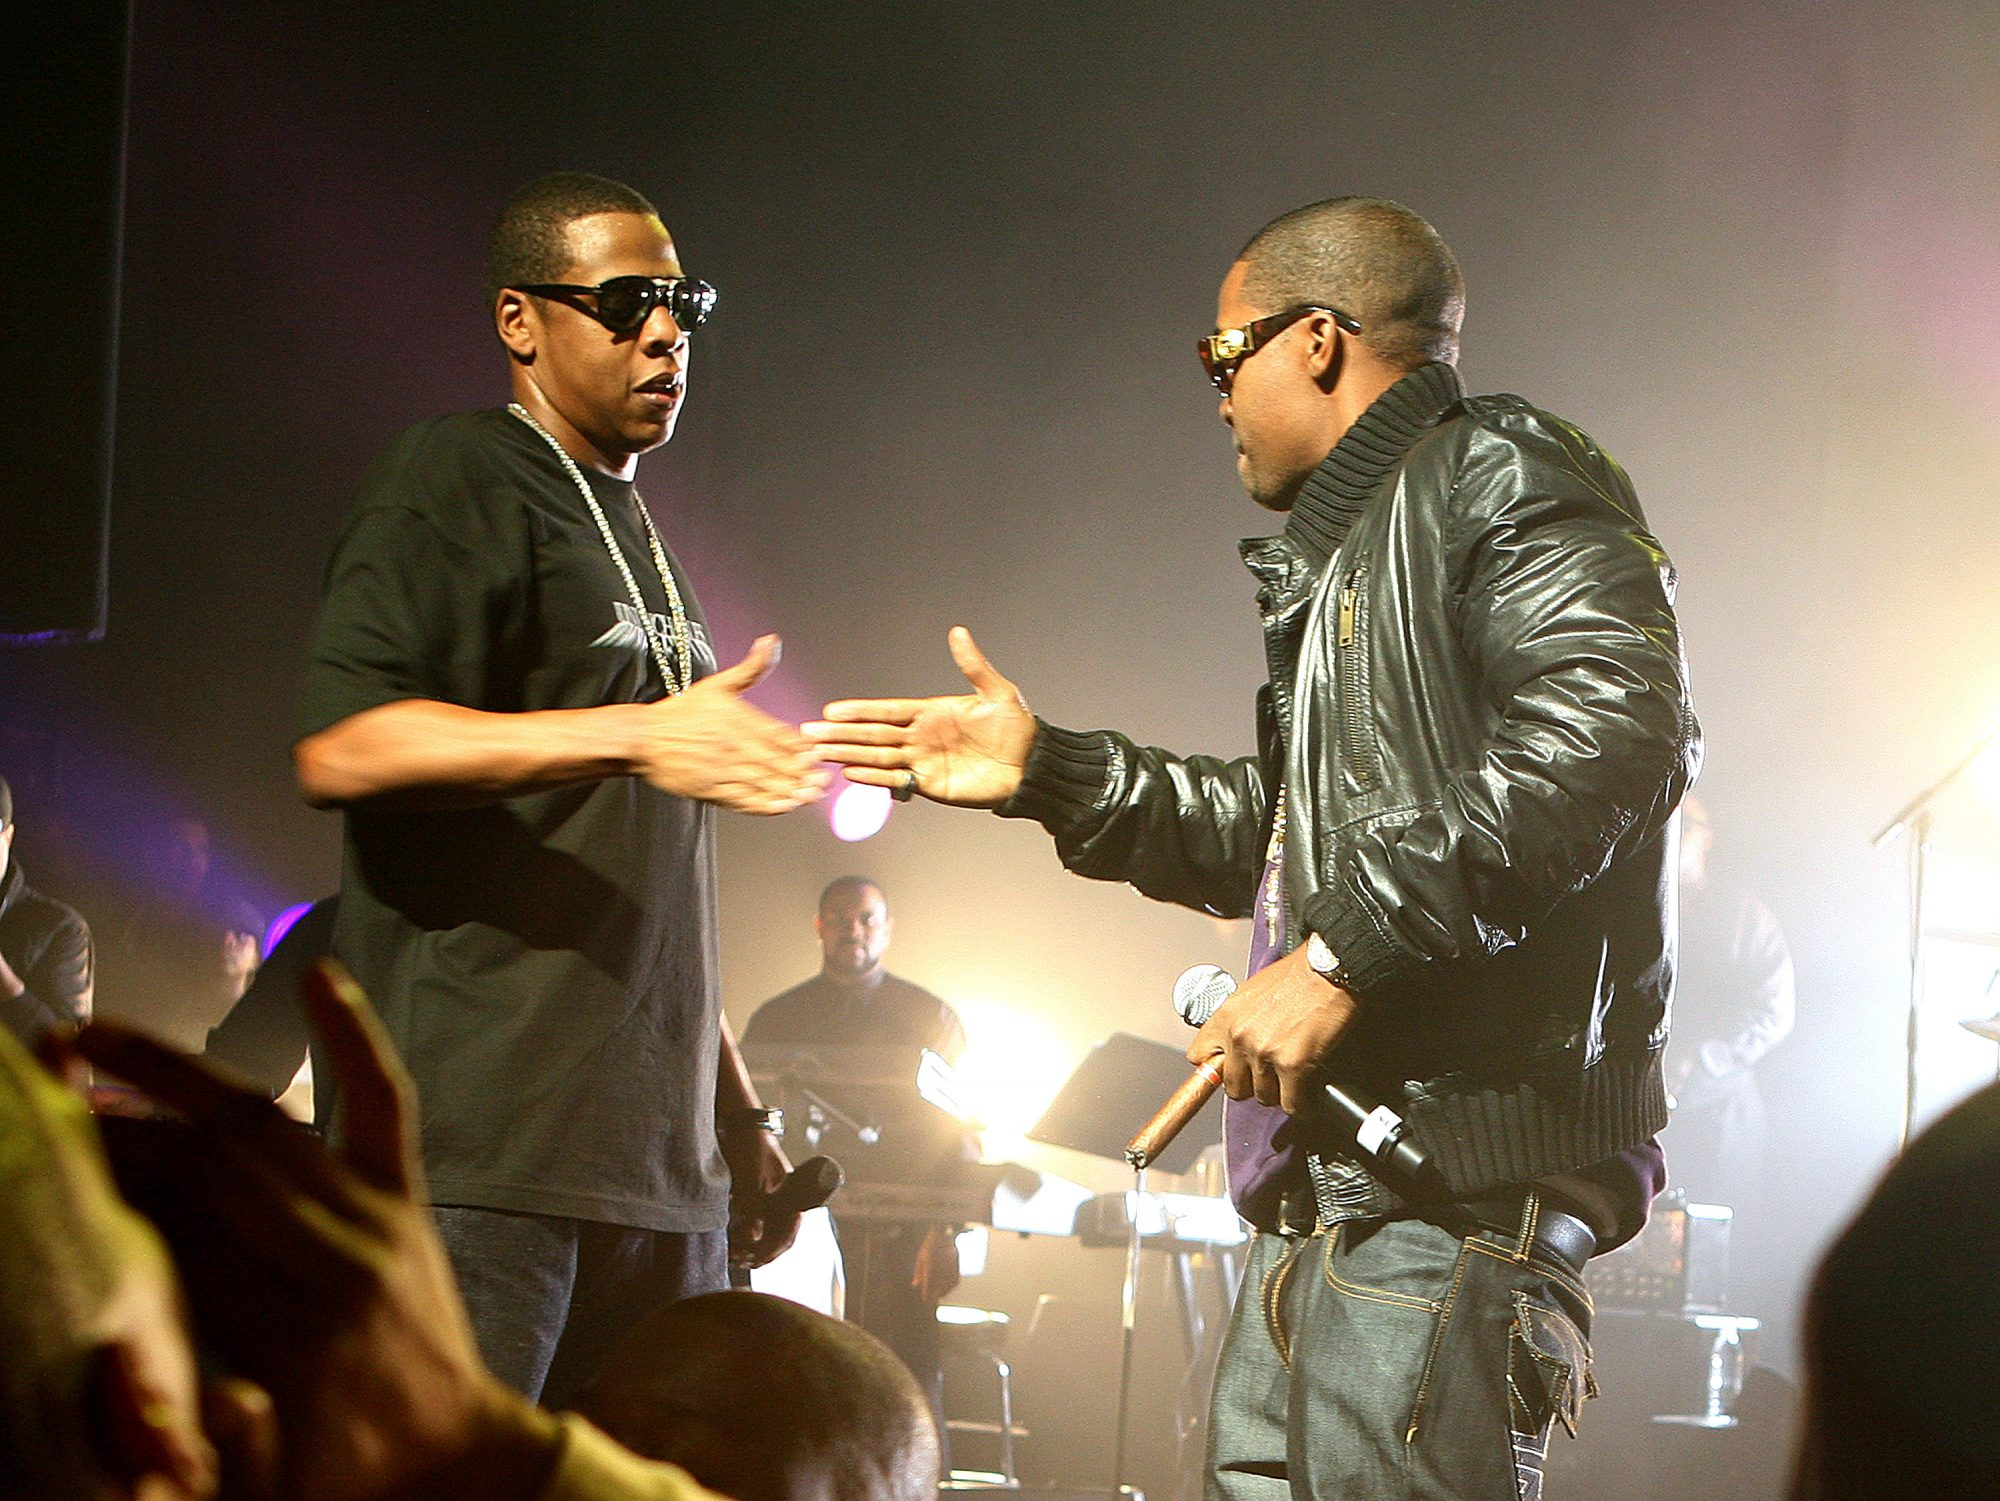 jay z and nas at the apollo